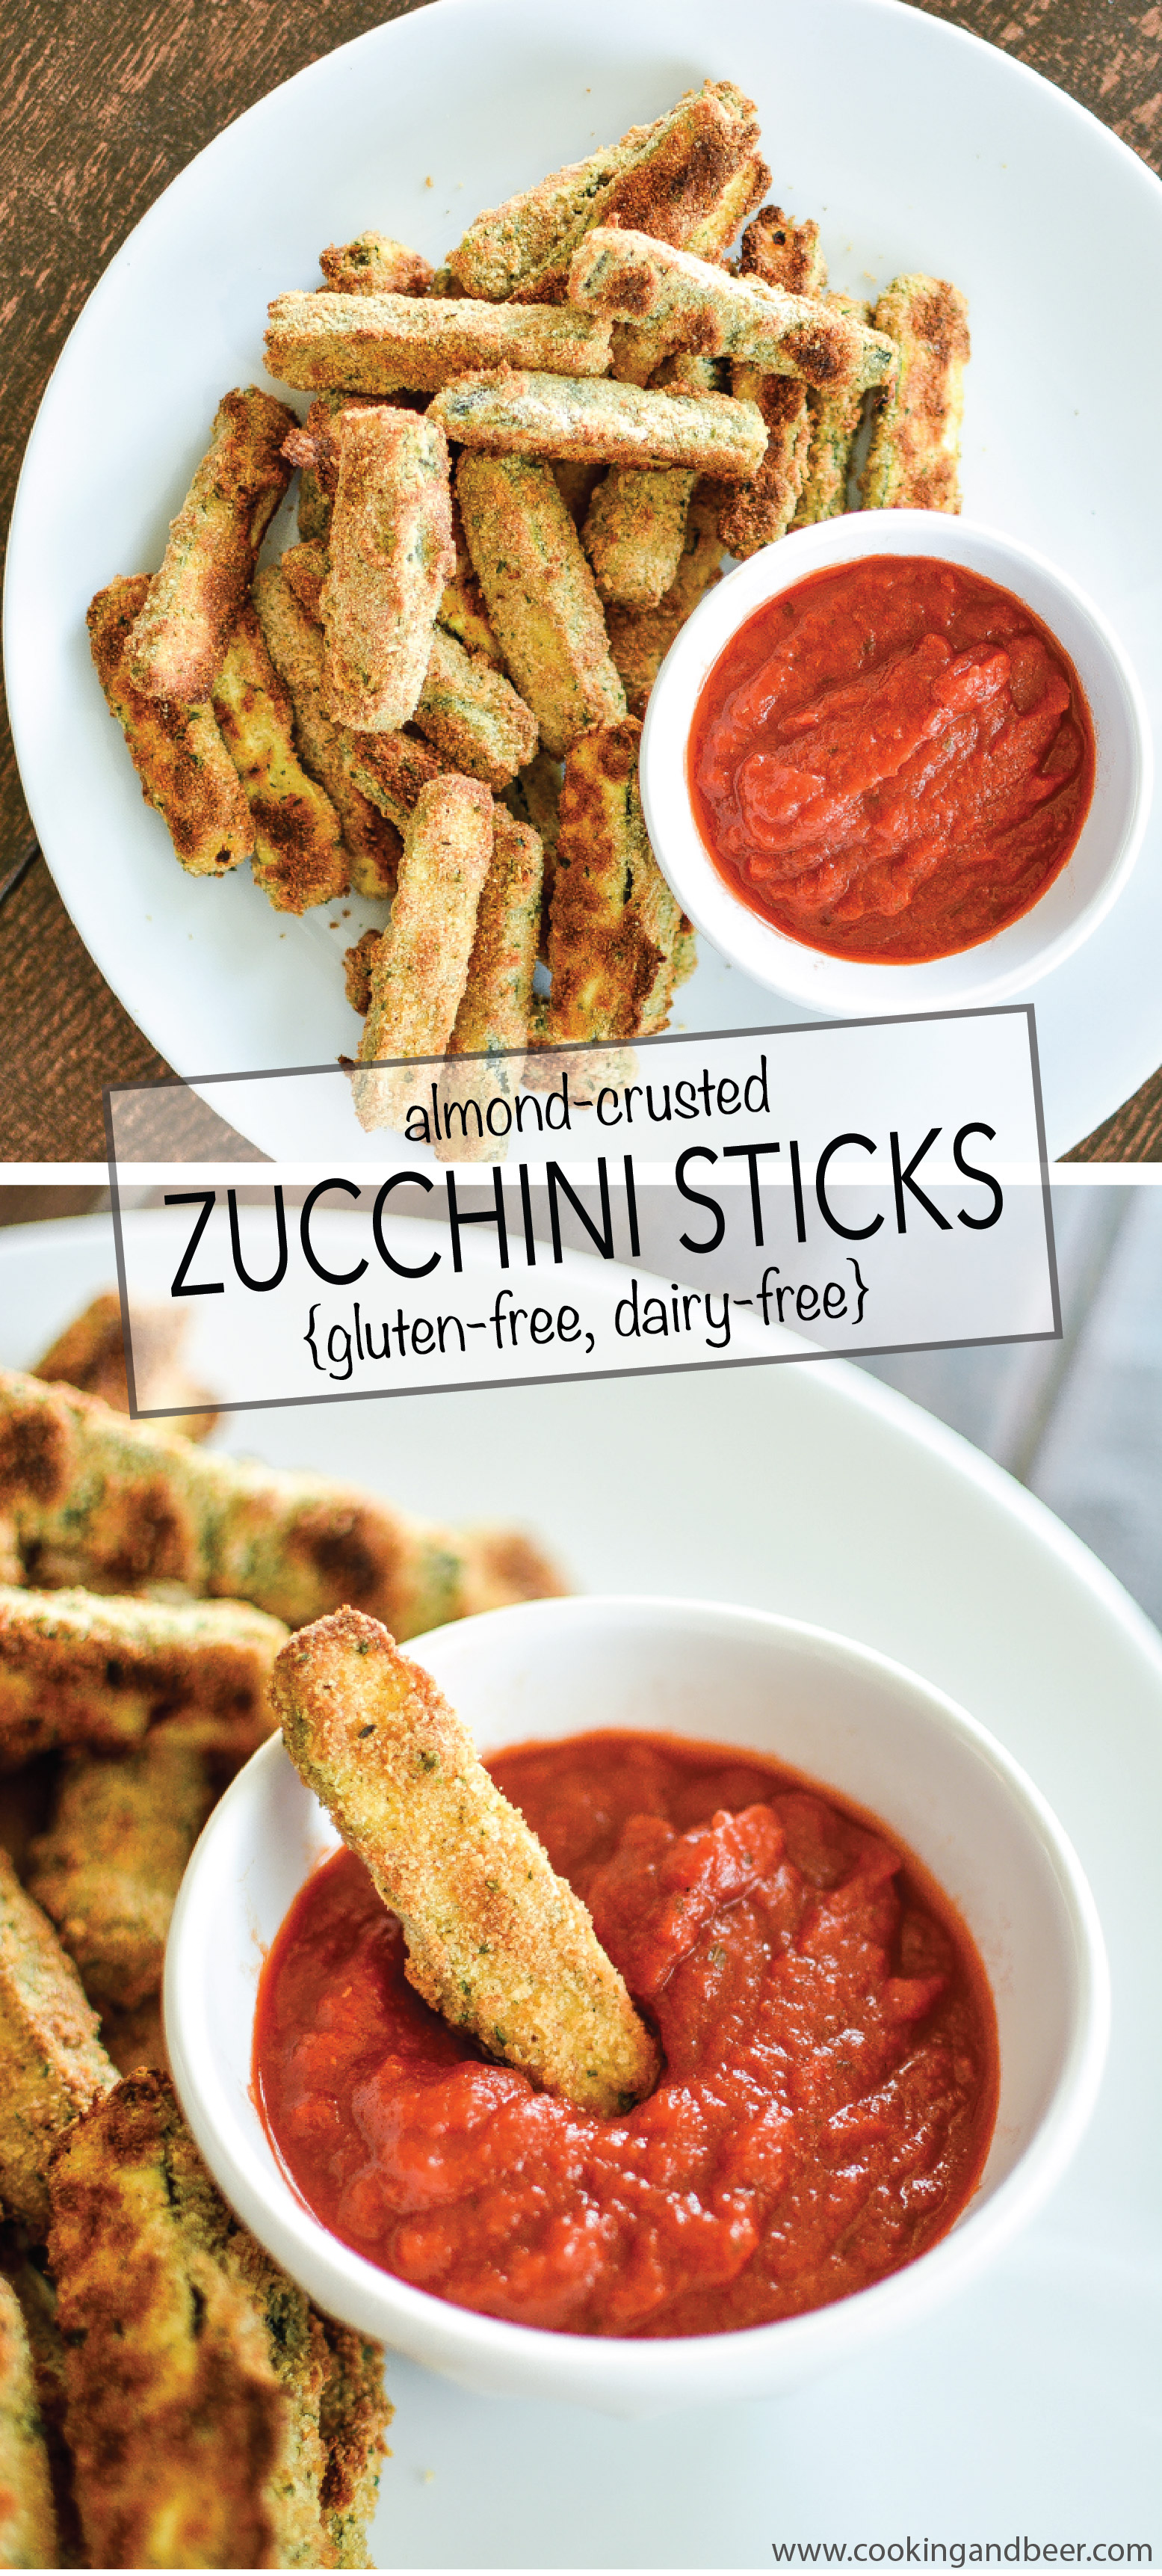 Almond-Crusted Zucchini Sticks are gluten-free and dairy-free. They are the perfect afternoon snack, quick lunch or weeknight dinner recipe! | www.cookingandbeer.com